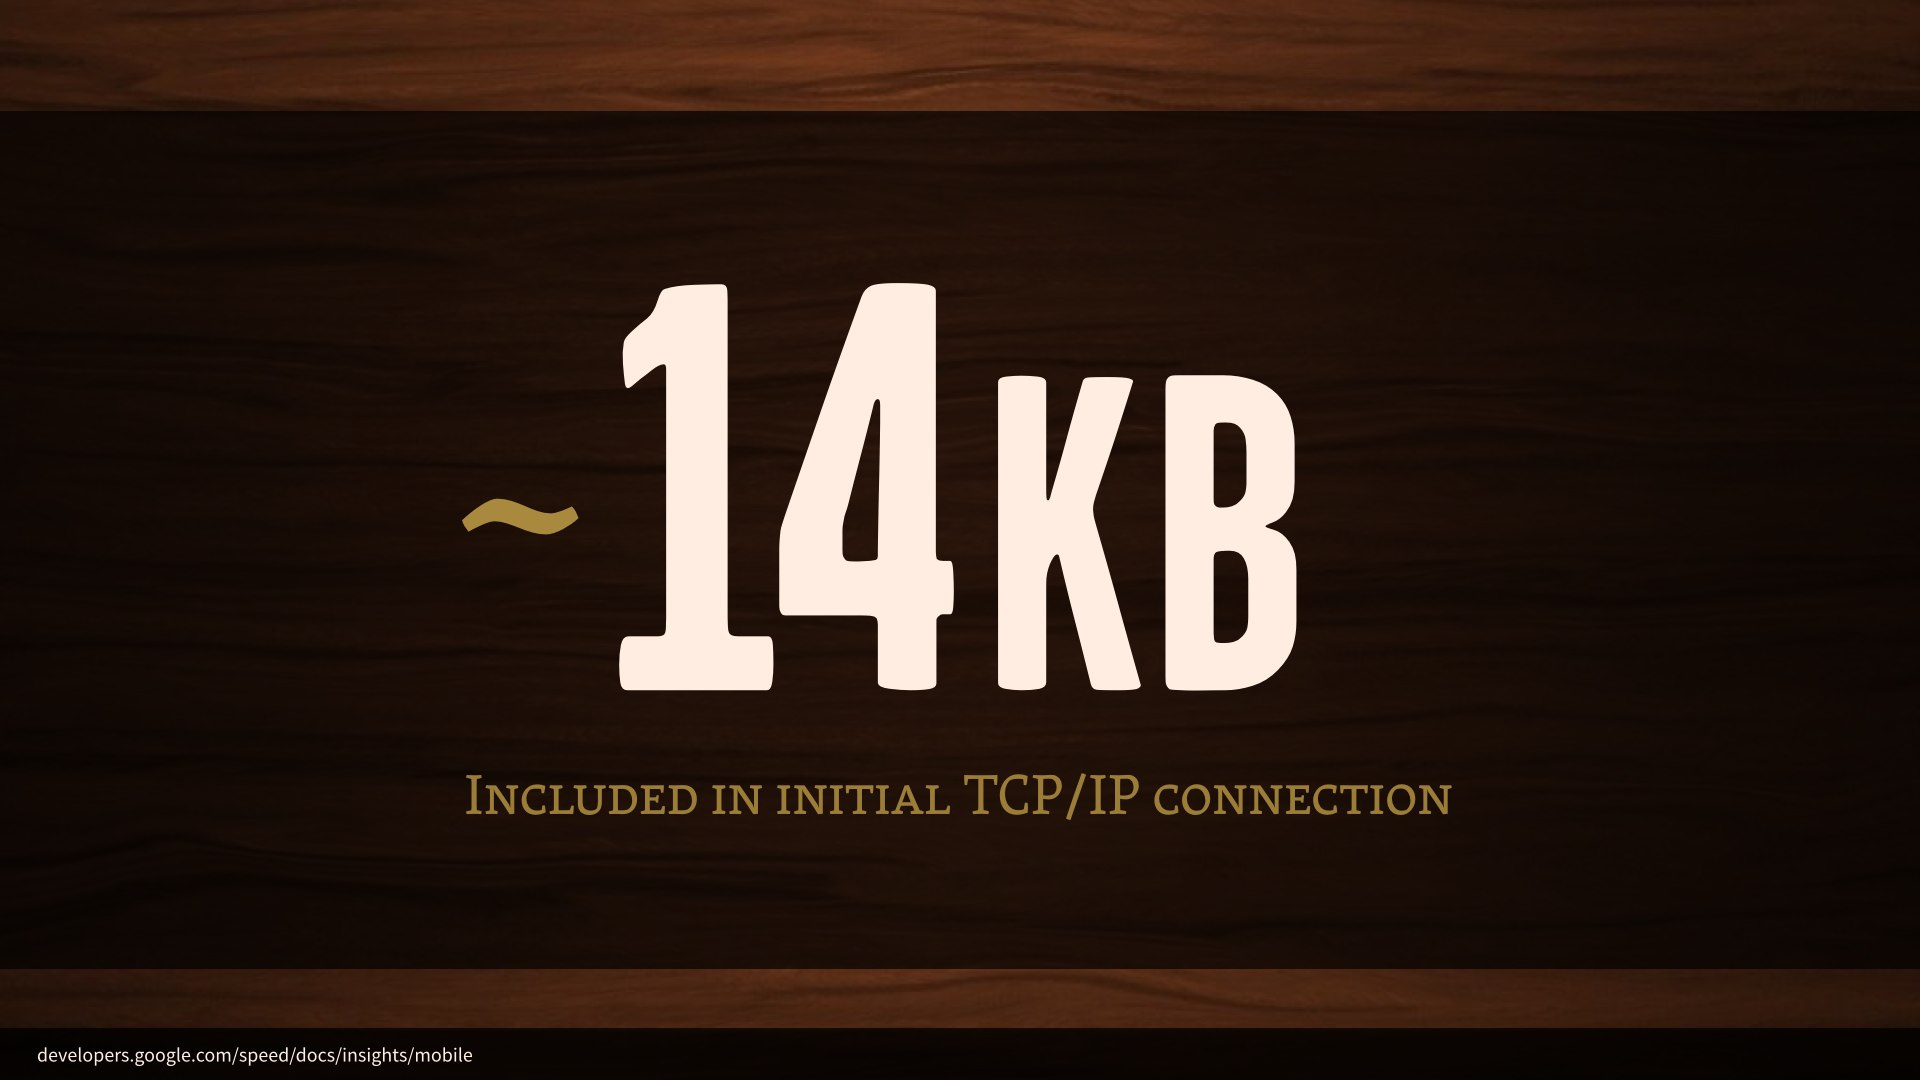 About 14 kilobytes included in initial TCP/IP connection